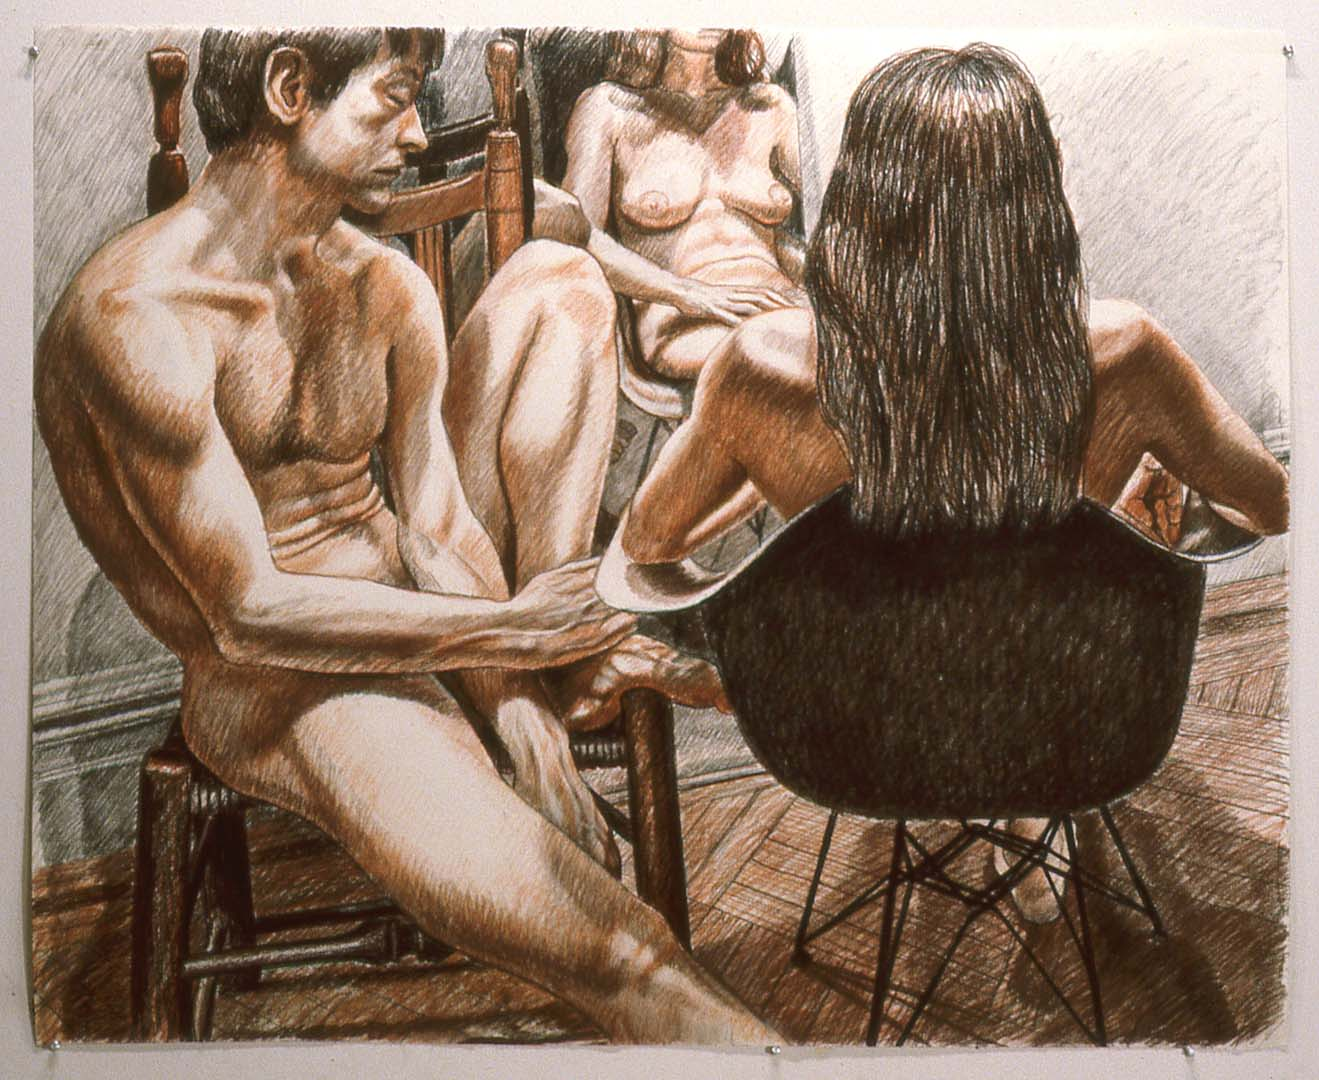 1981 Male and Female Models Conte Crayon 41 x 51.5